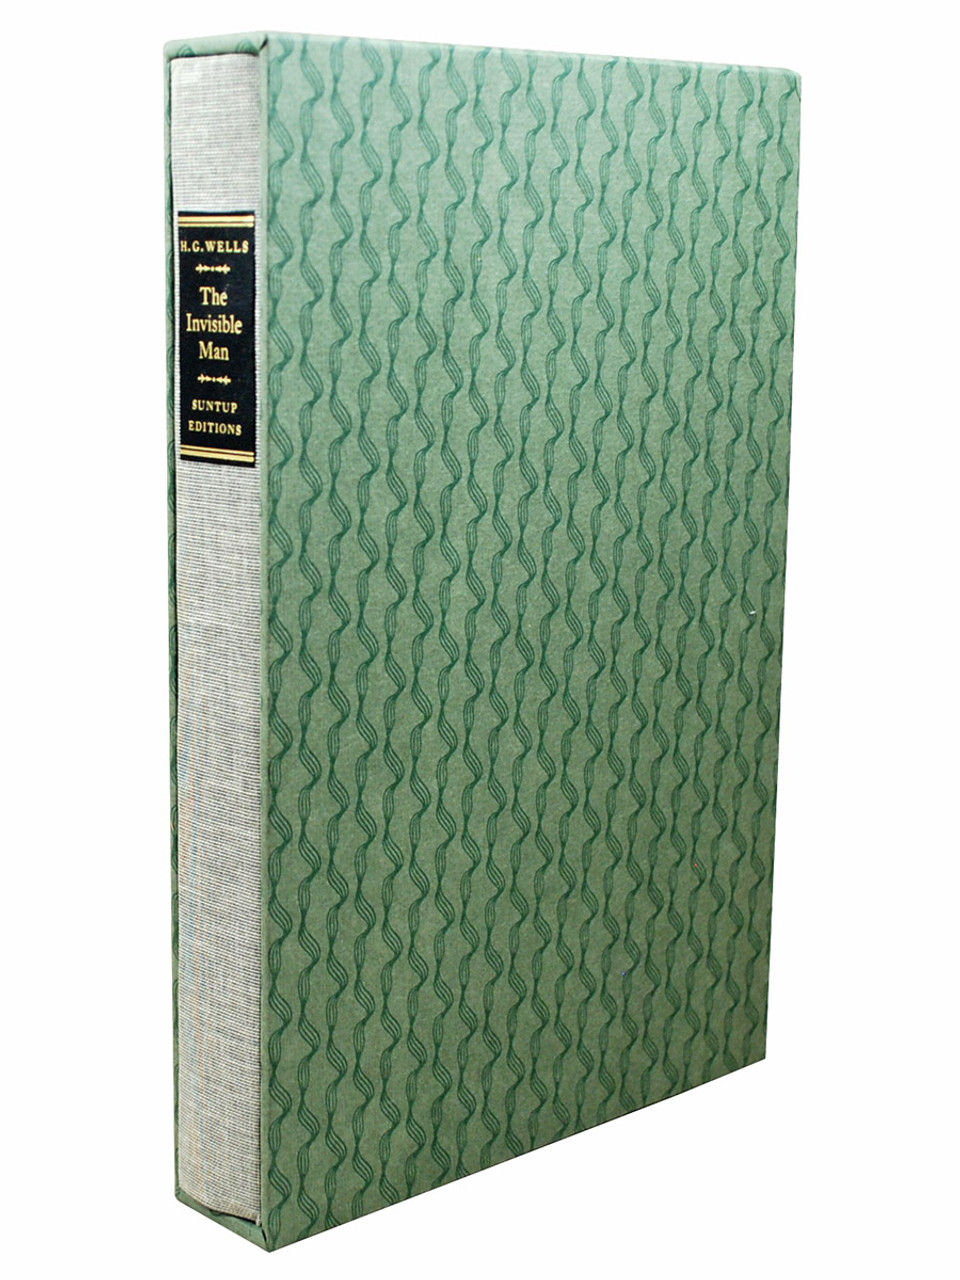 """Suntup Editions - The H.G. Wells Trilogy """"The War of the Worlds"""" , """"The Time Machine"""", """"The Invisible Man"""" Signed Limited Edition, Matching Numbered Set No. 90 of 250  [Very Fine]"""